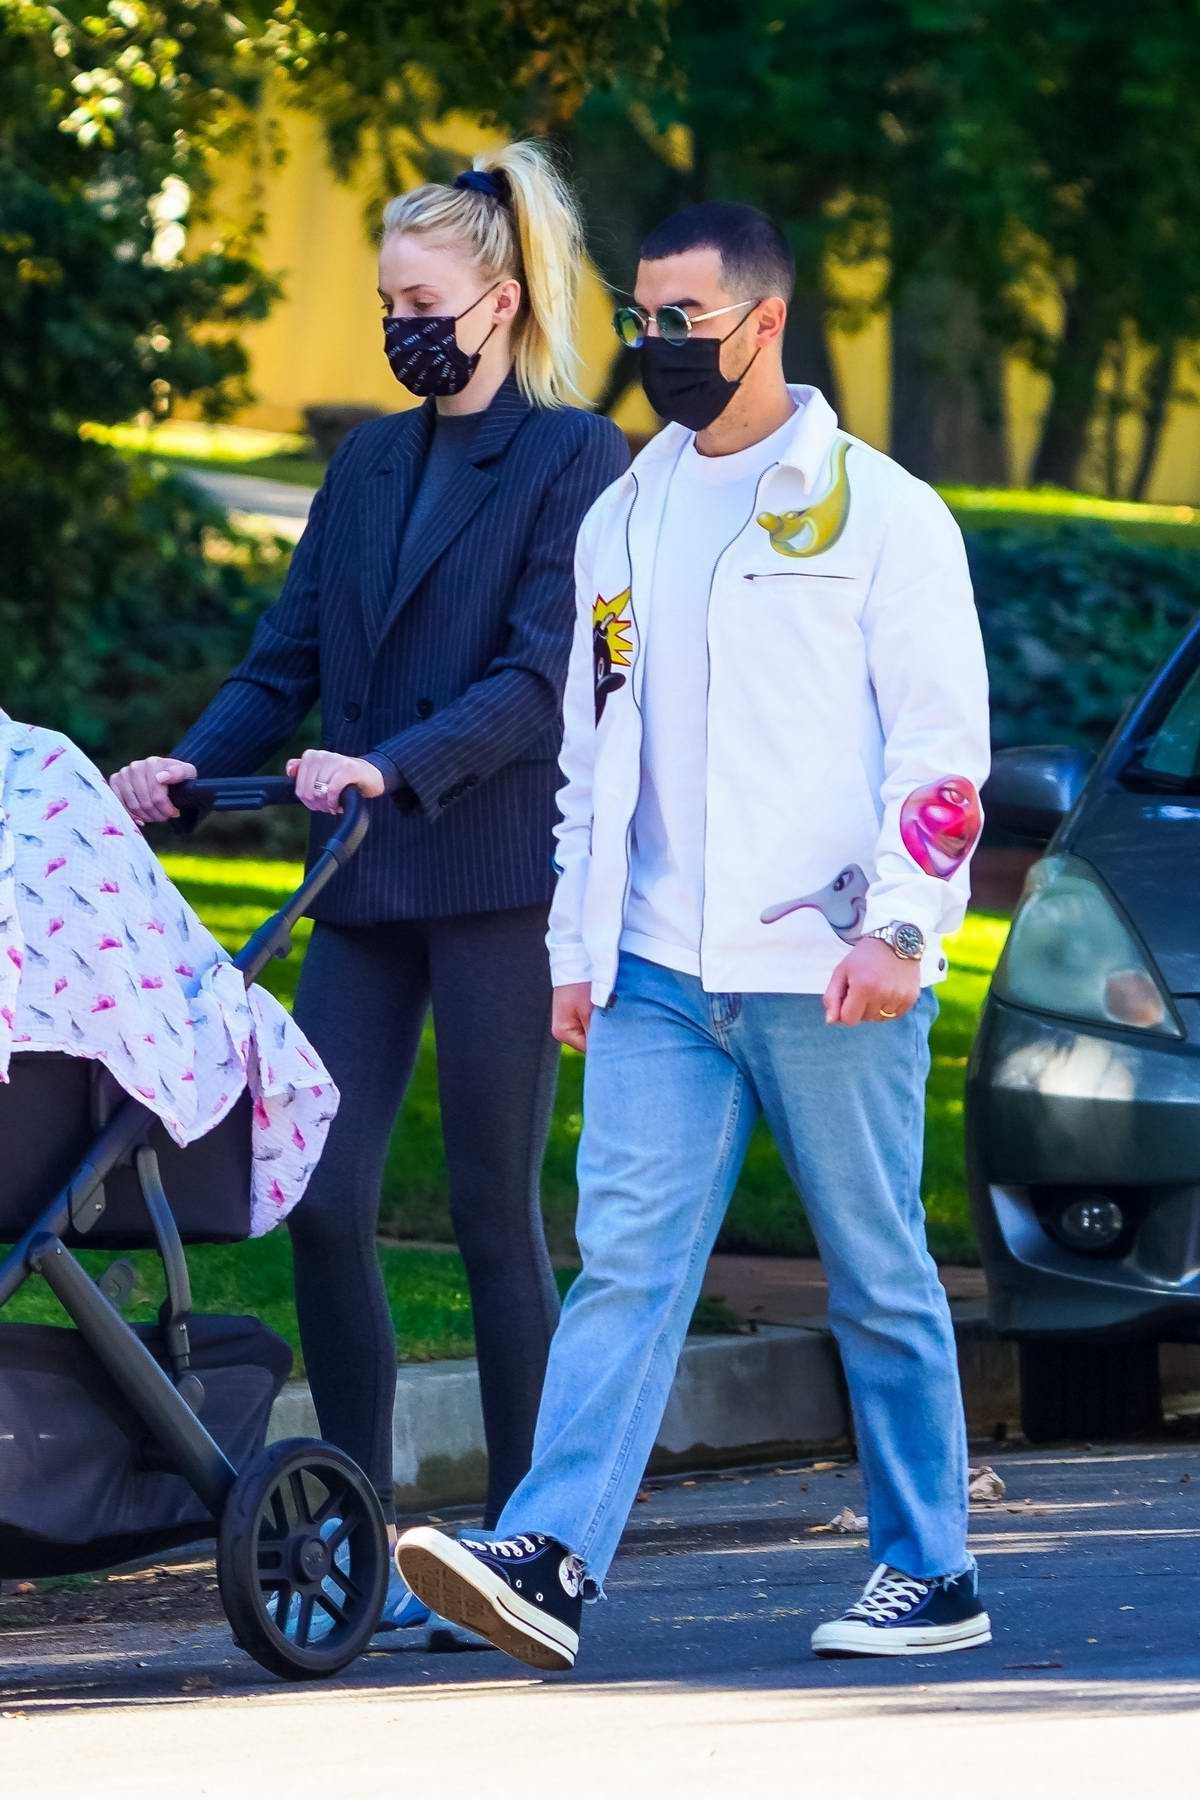 Sophie Turner and Joe Jonas take their daughter Willa out for a walk in Los Angeles